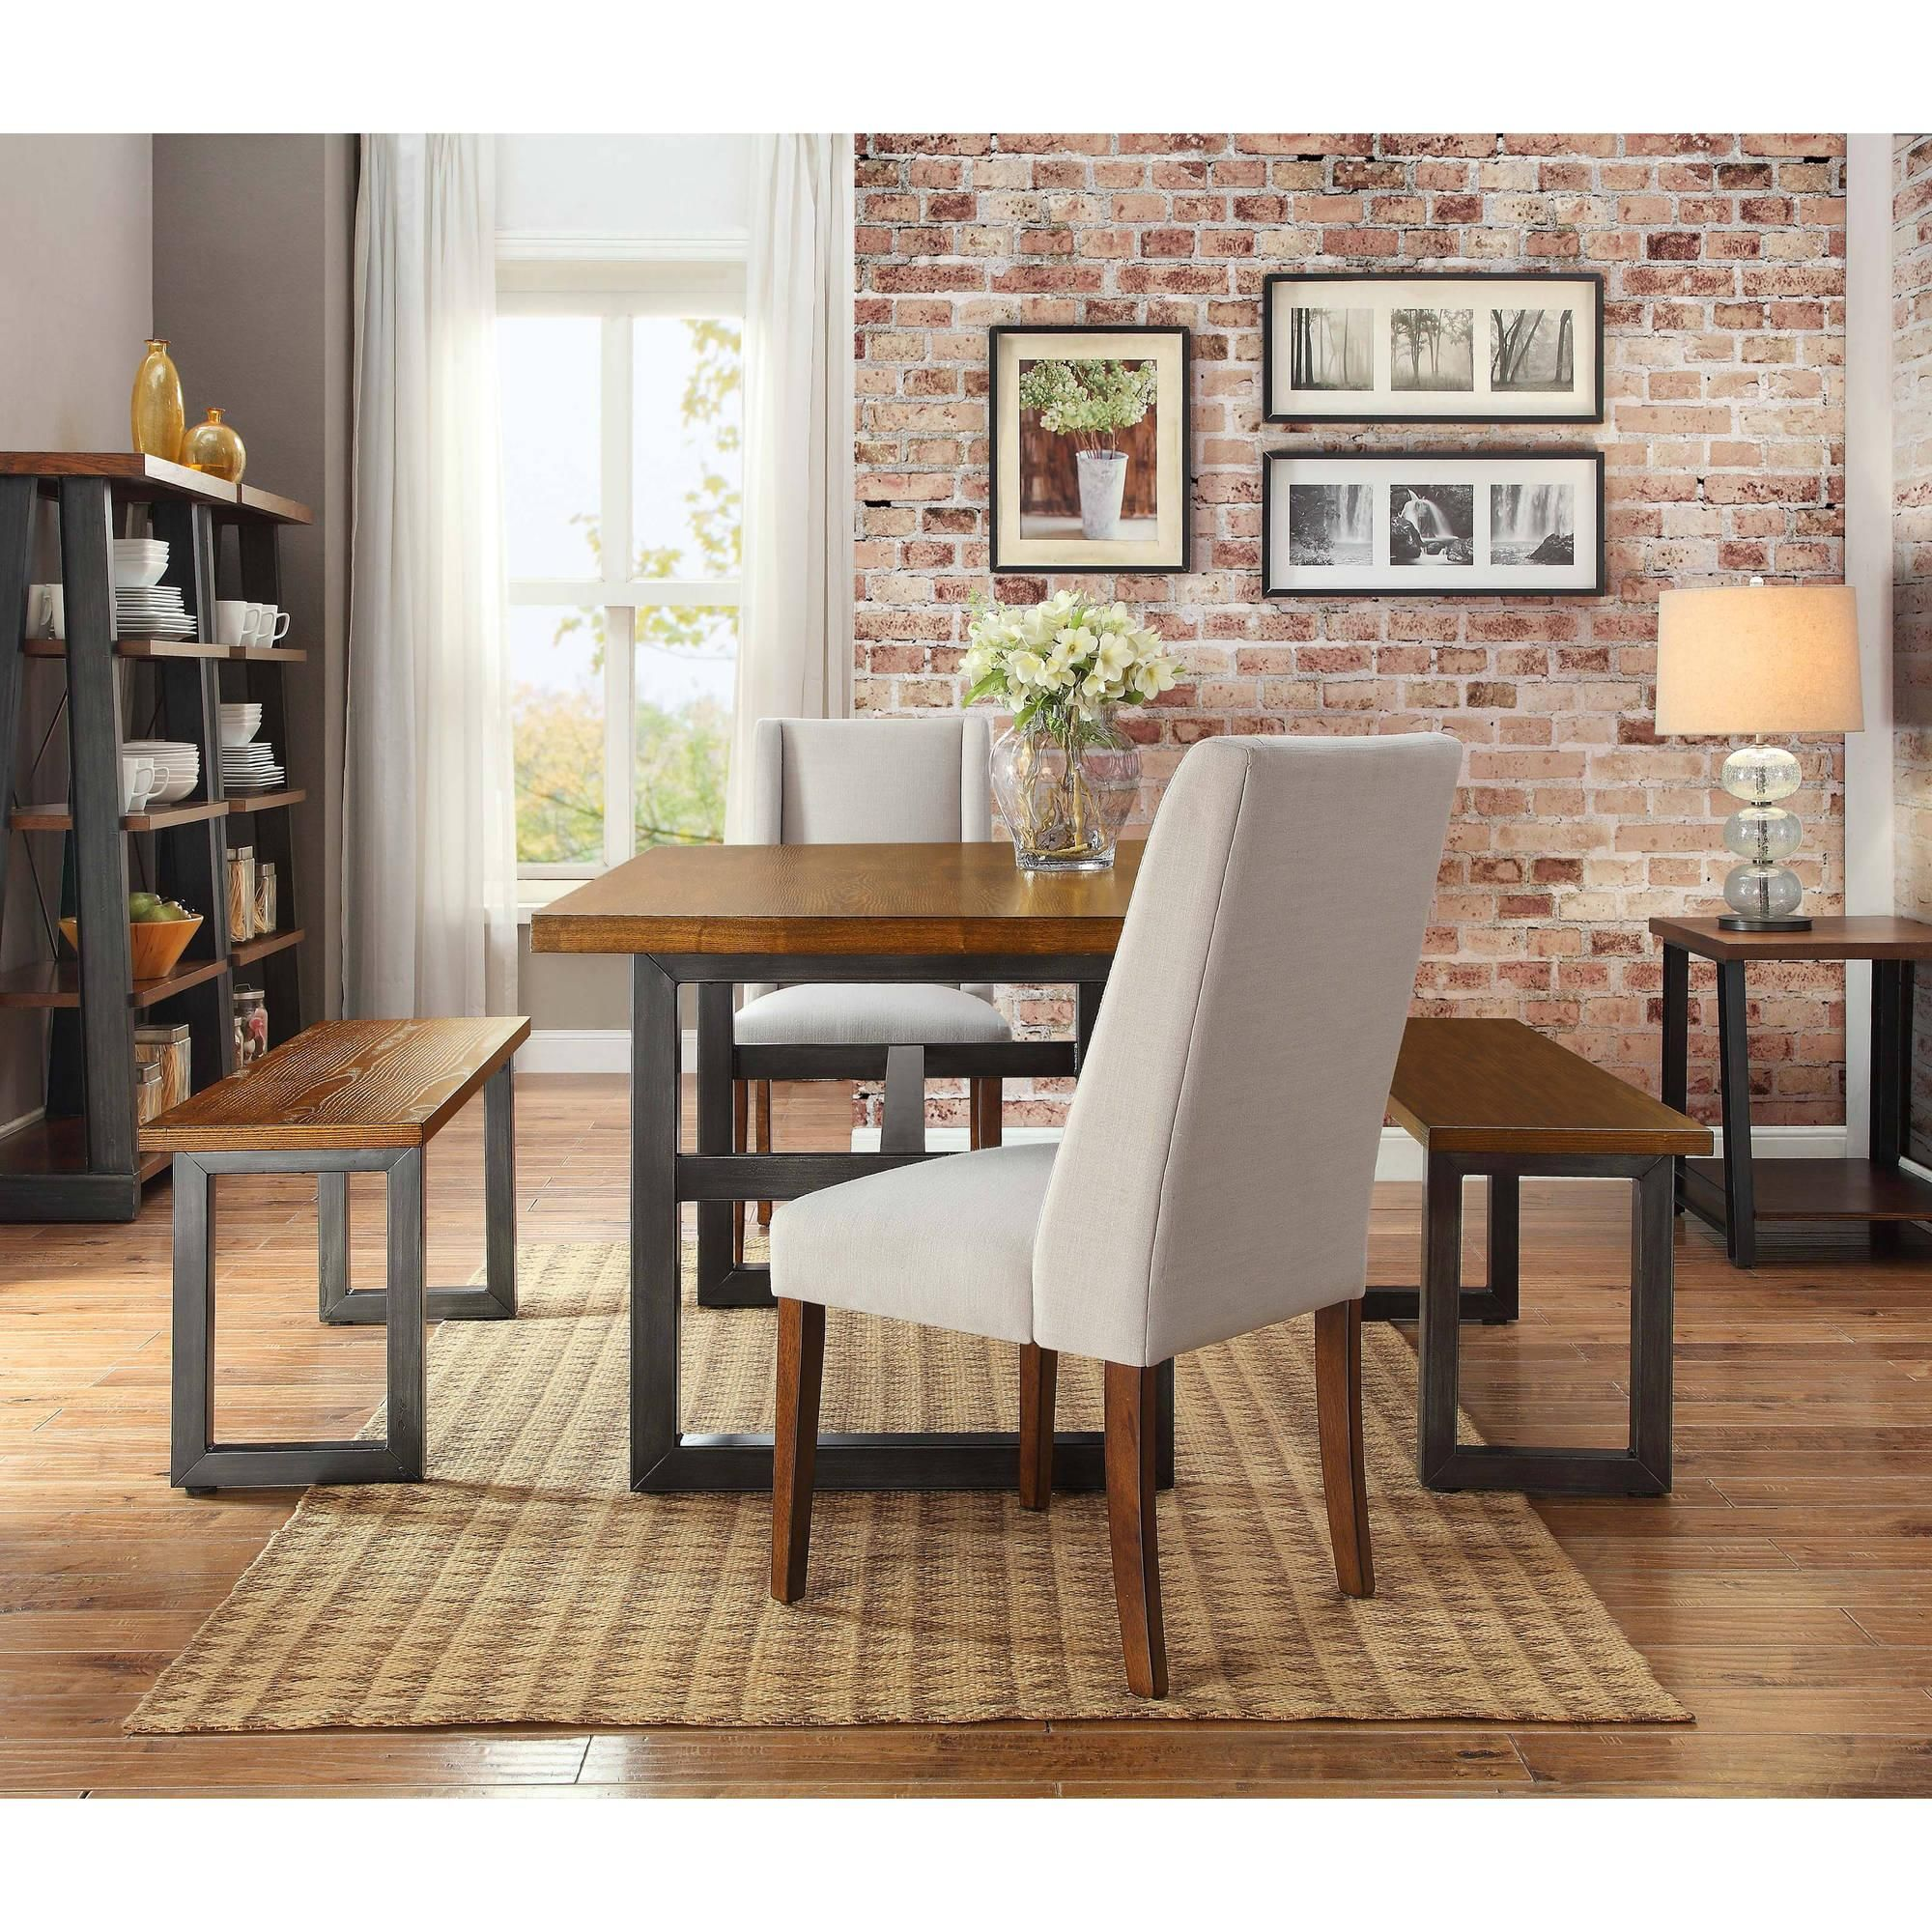 Better Homes And Gardens Mercer Dining Table  Walmart Classy Dining Room Tables Walmart Inspiration